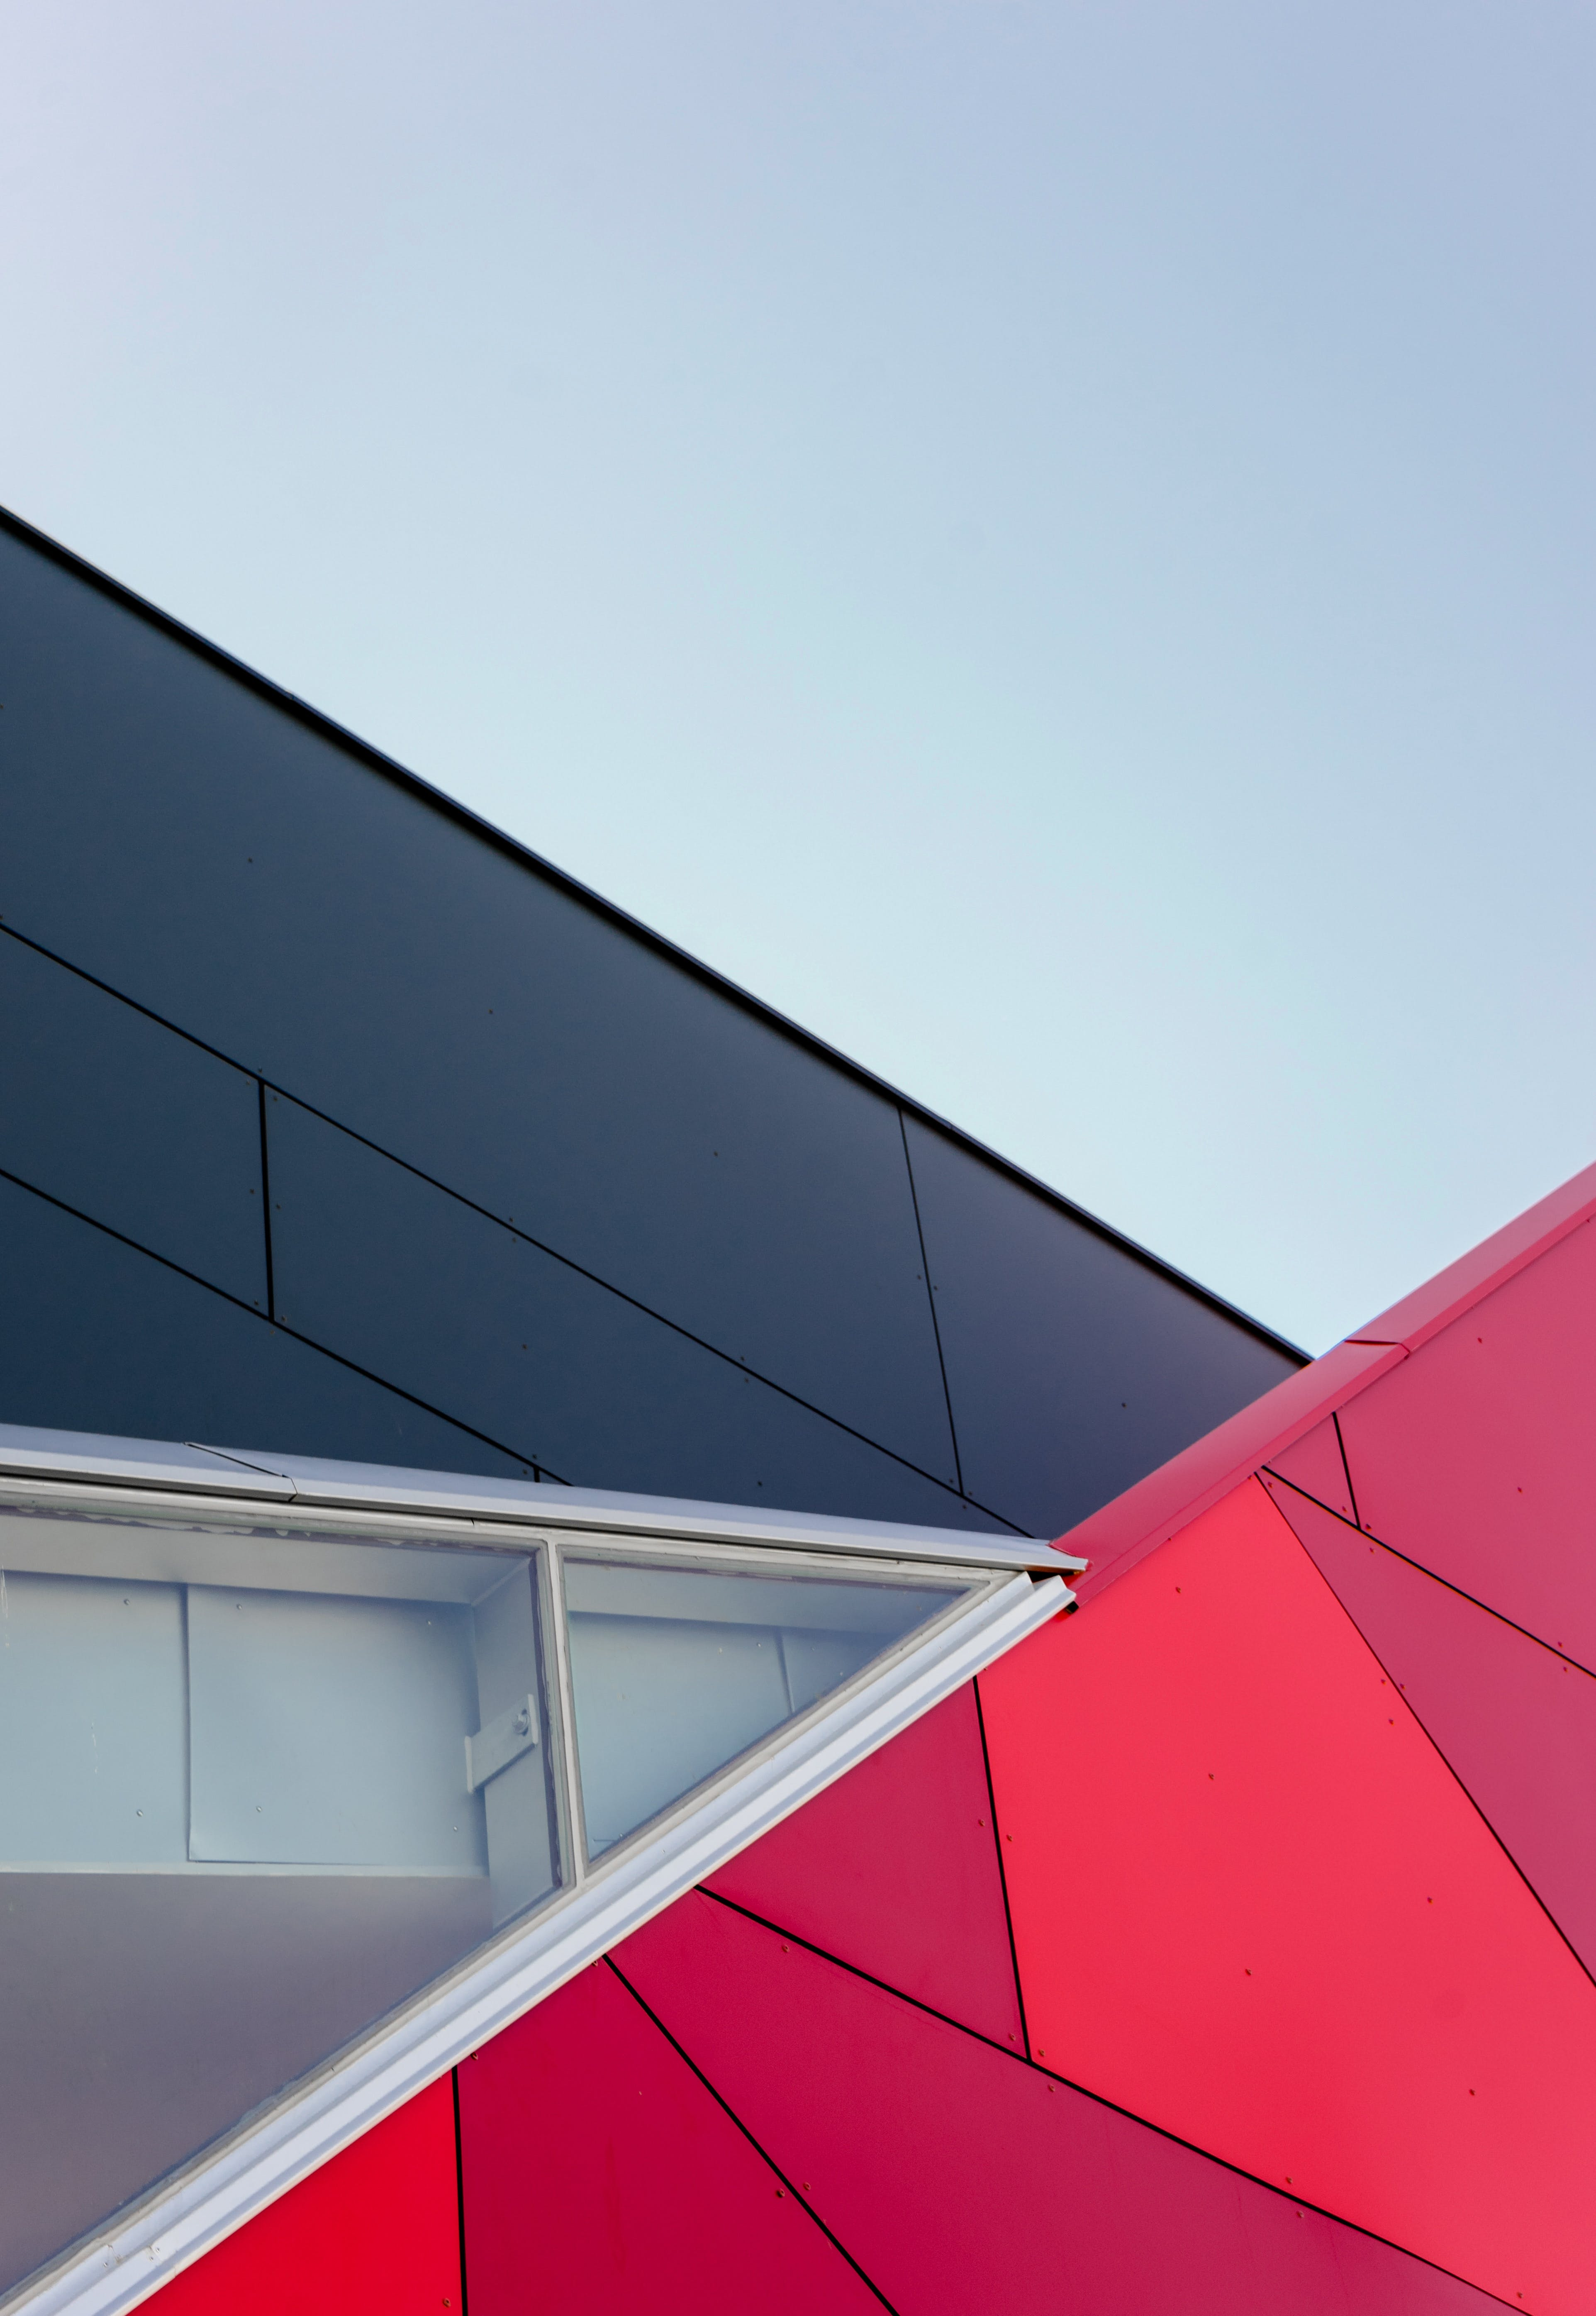 abstract, abstract photo, architectural